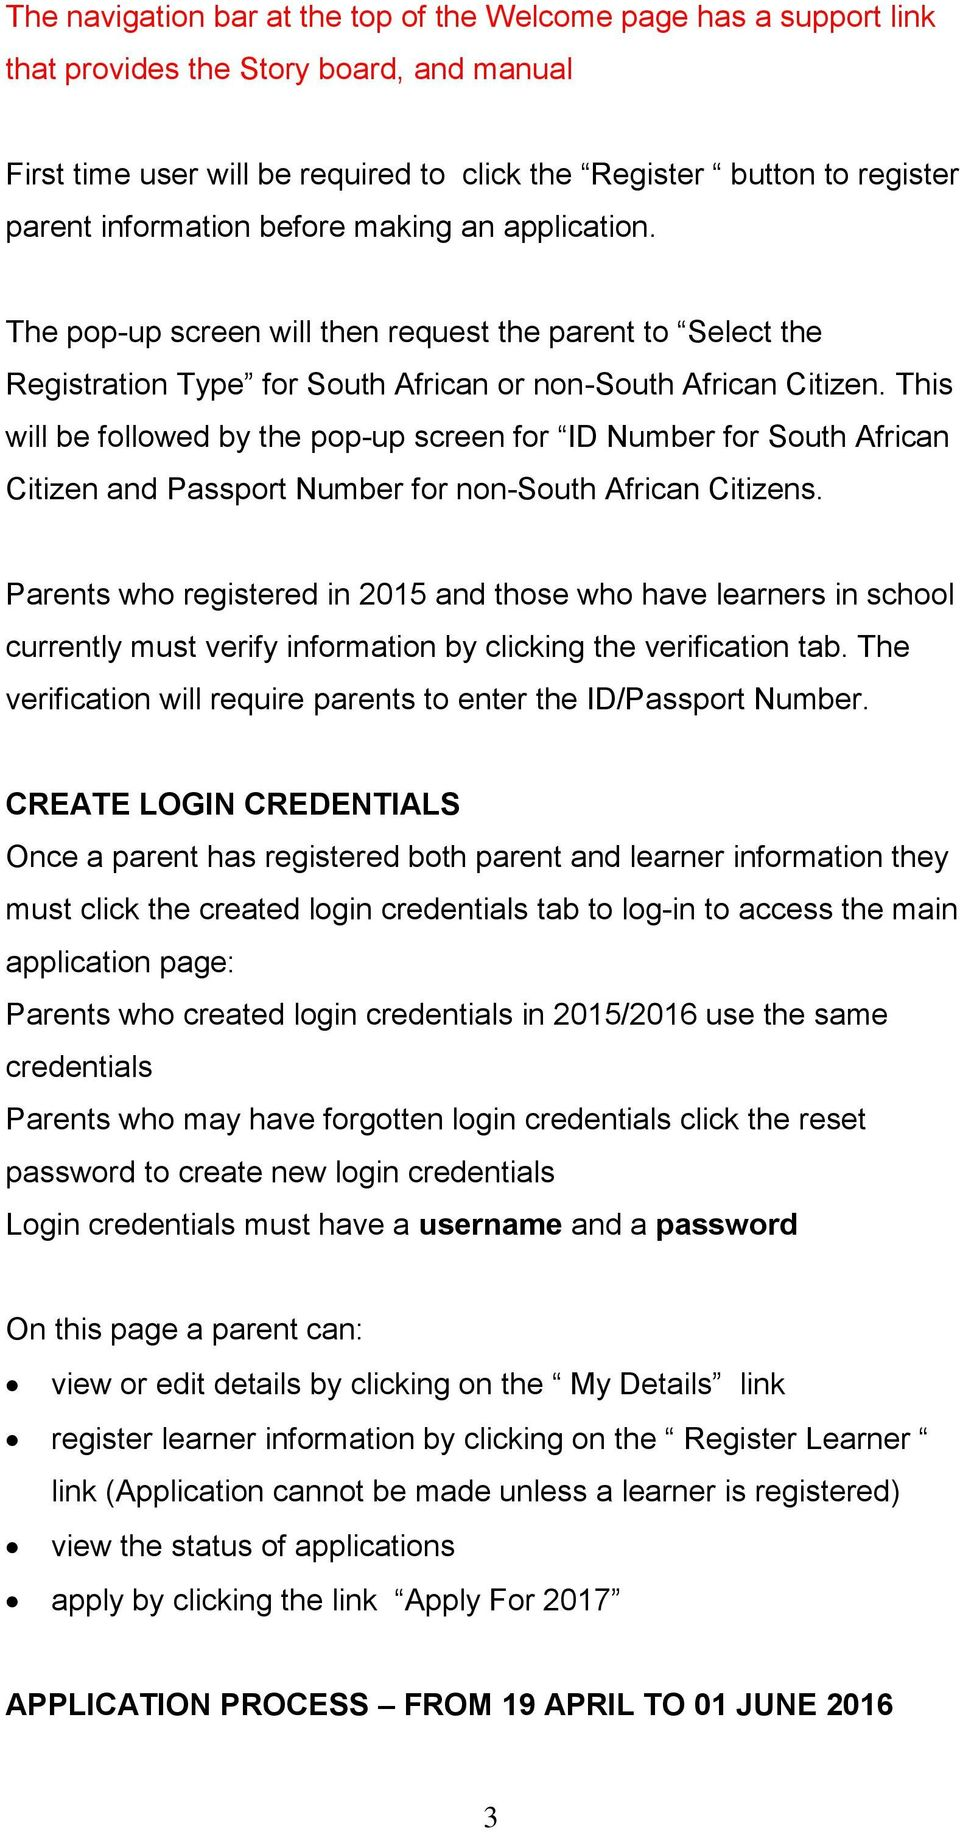 This will be followed by the pop-up screen for ID Number for South African Citizen and Passport Number for non-south African Citizens.